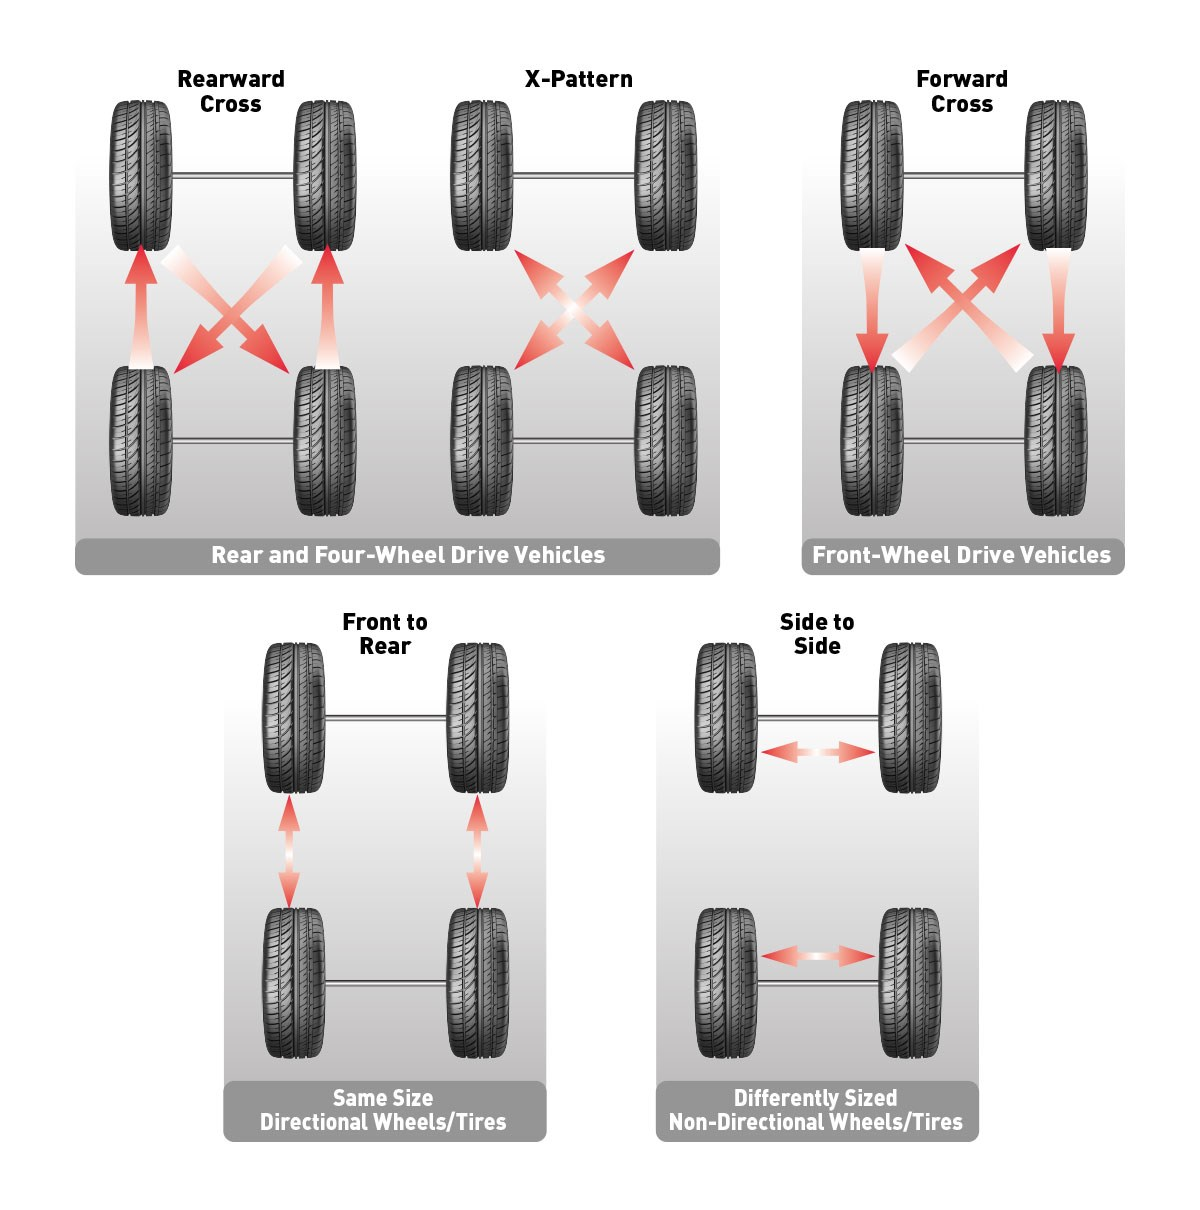 Tire pressures and wear